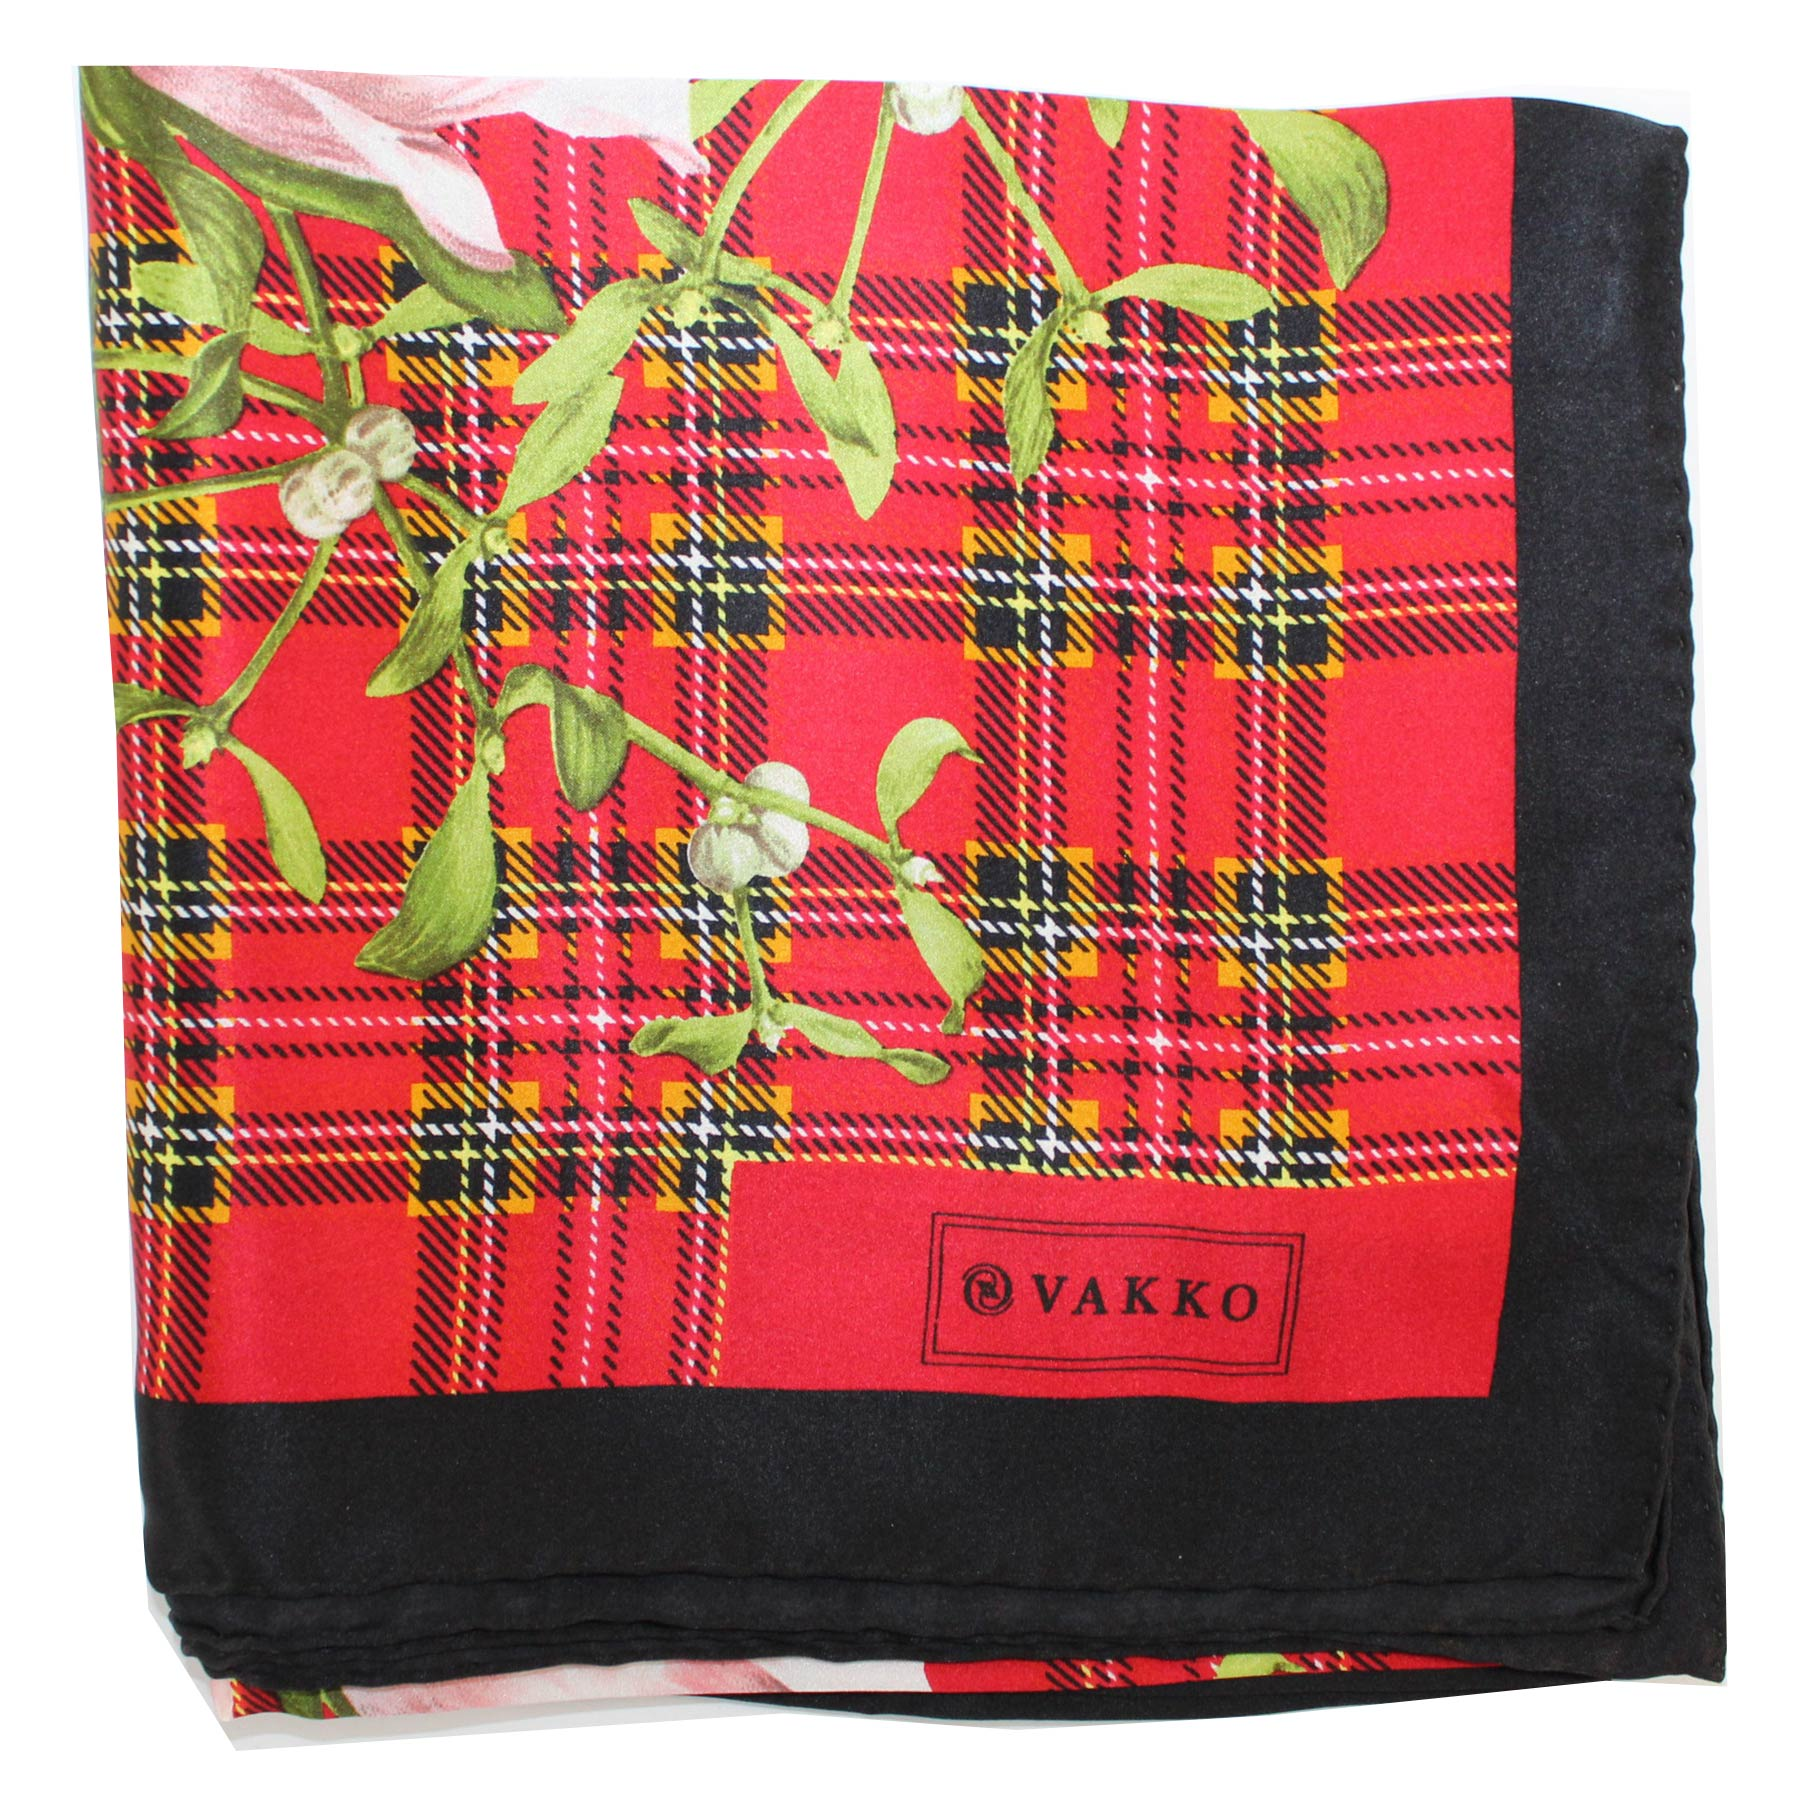 Vakko Scarf Red Green New